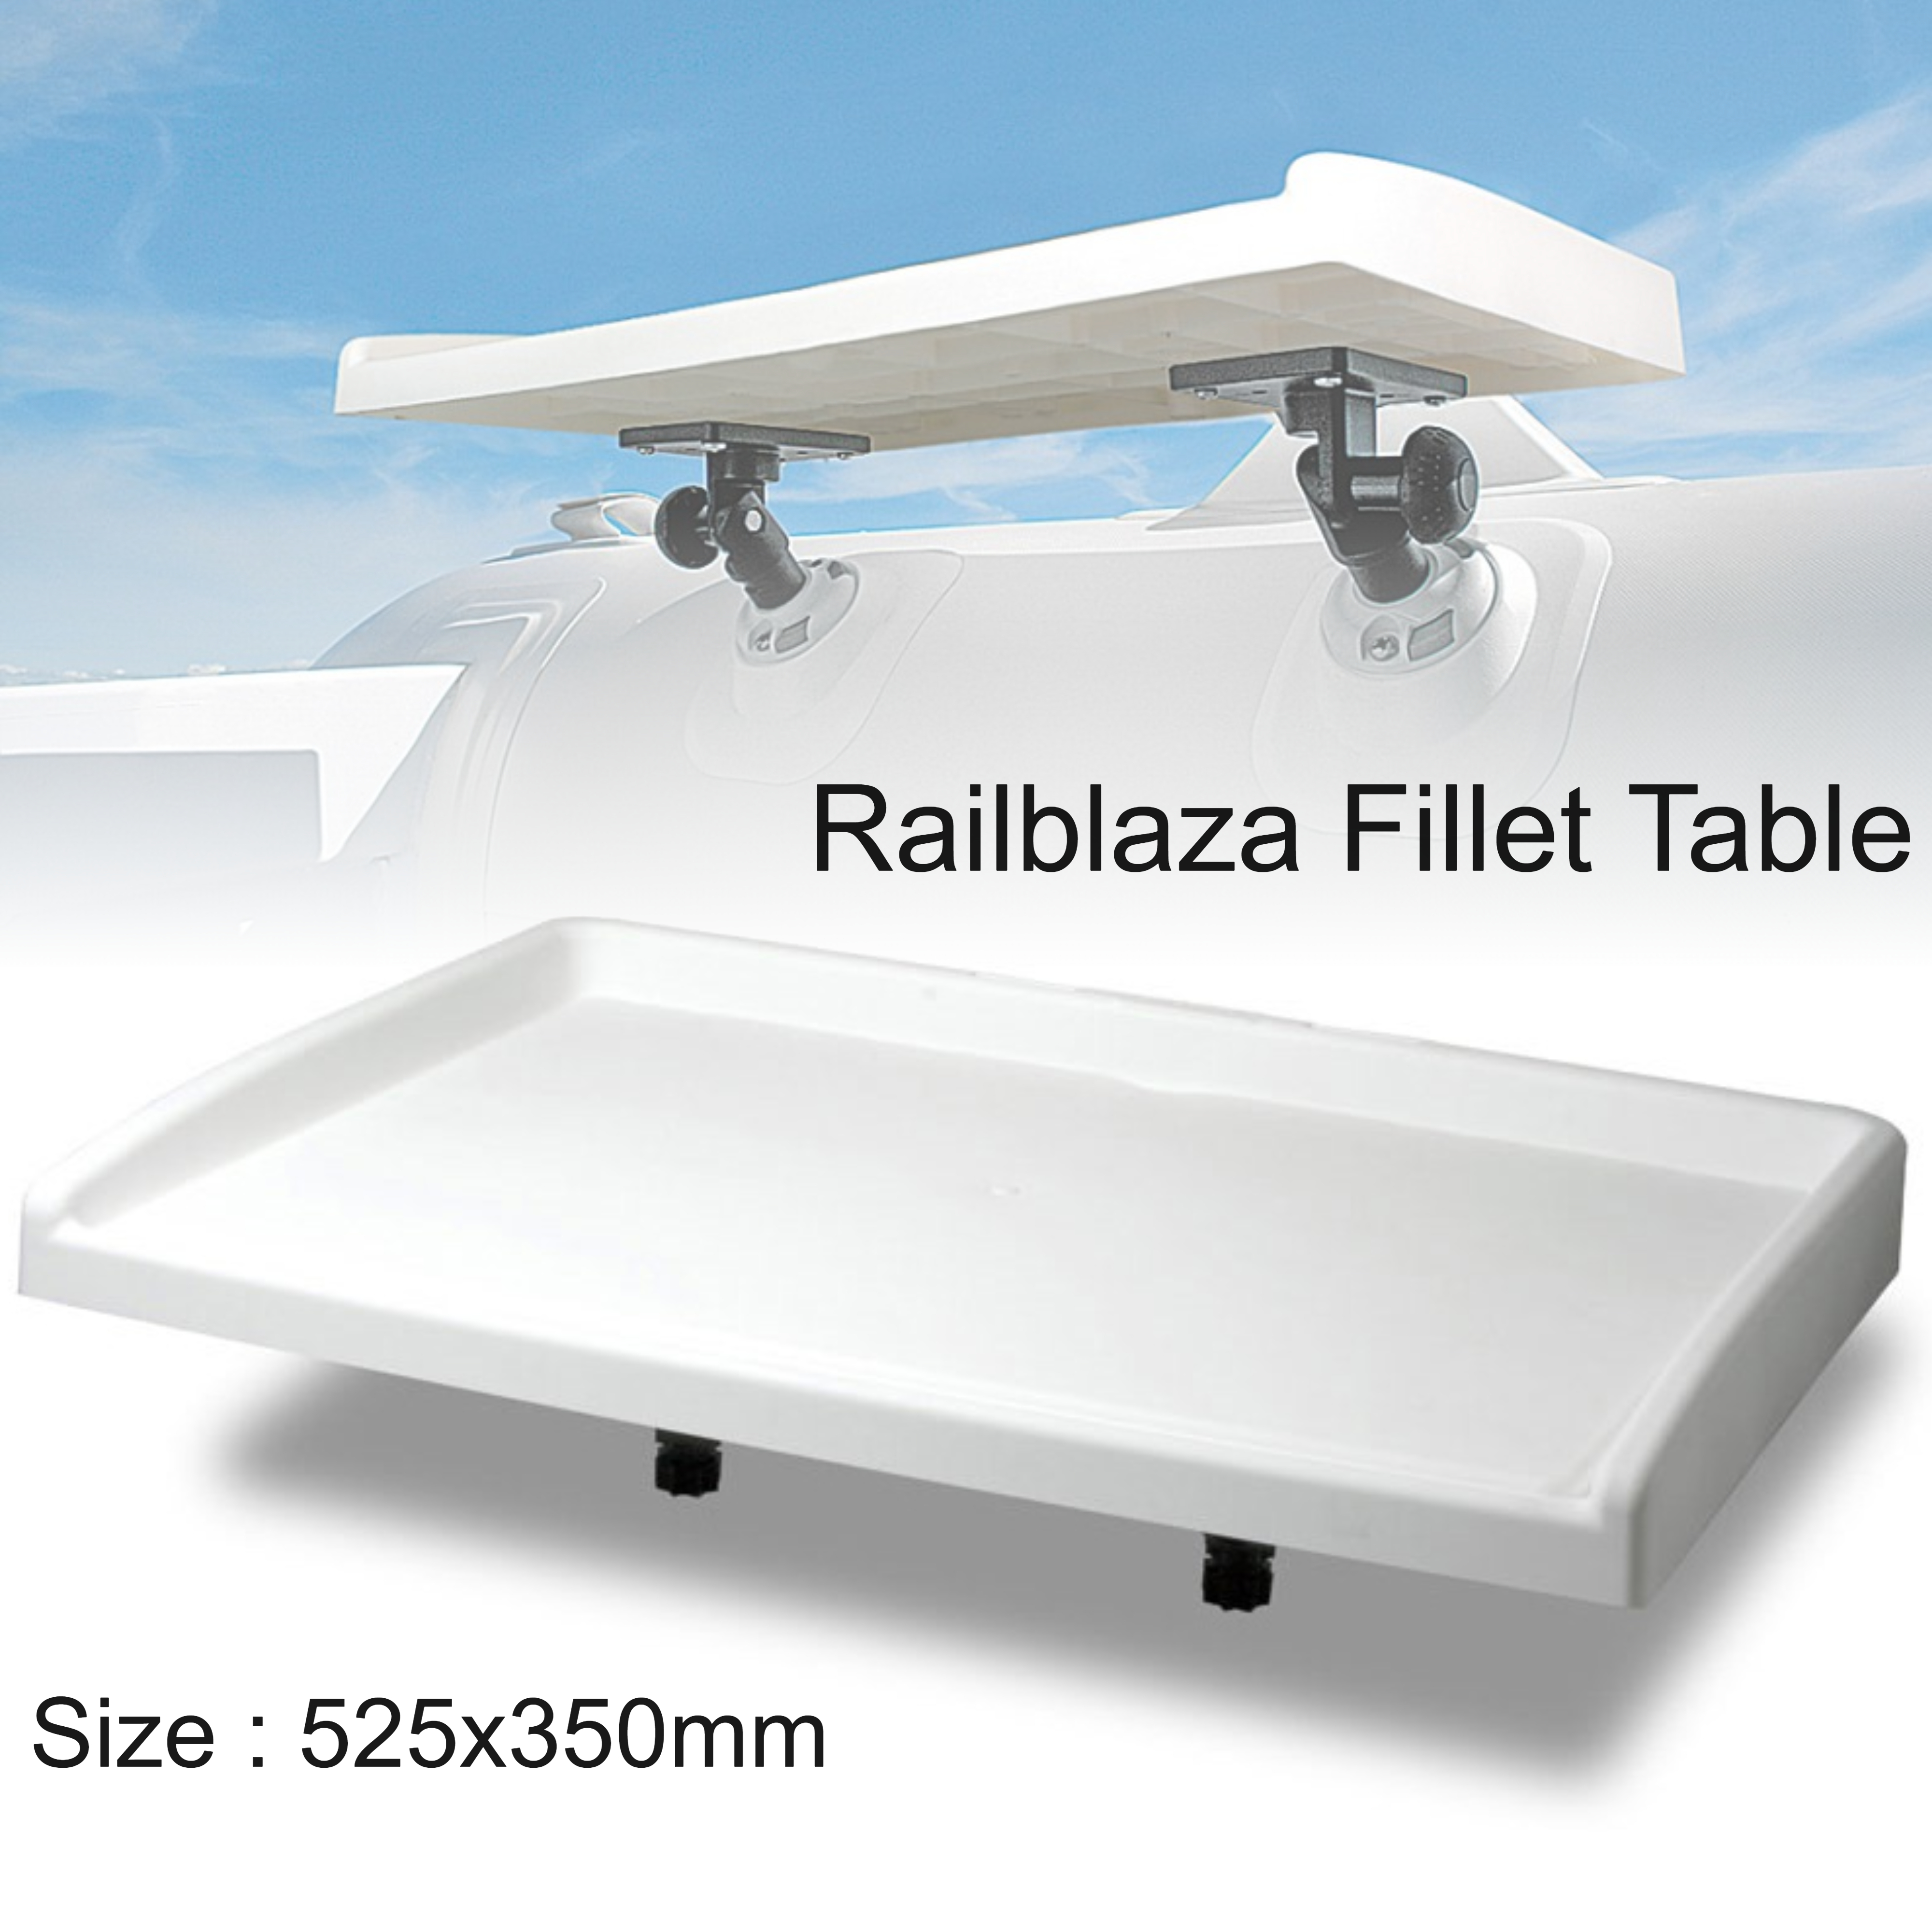 Railblaza Fillet Table Only|Moulded Quality|Easy-fit Overboard|02-4024-11